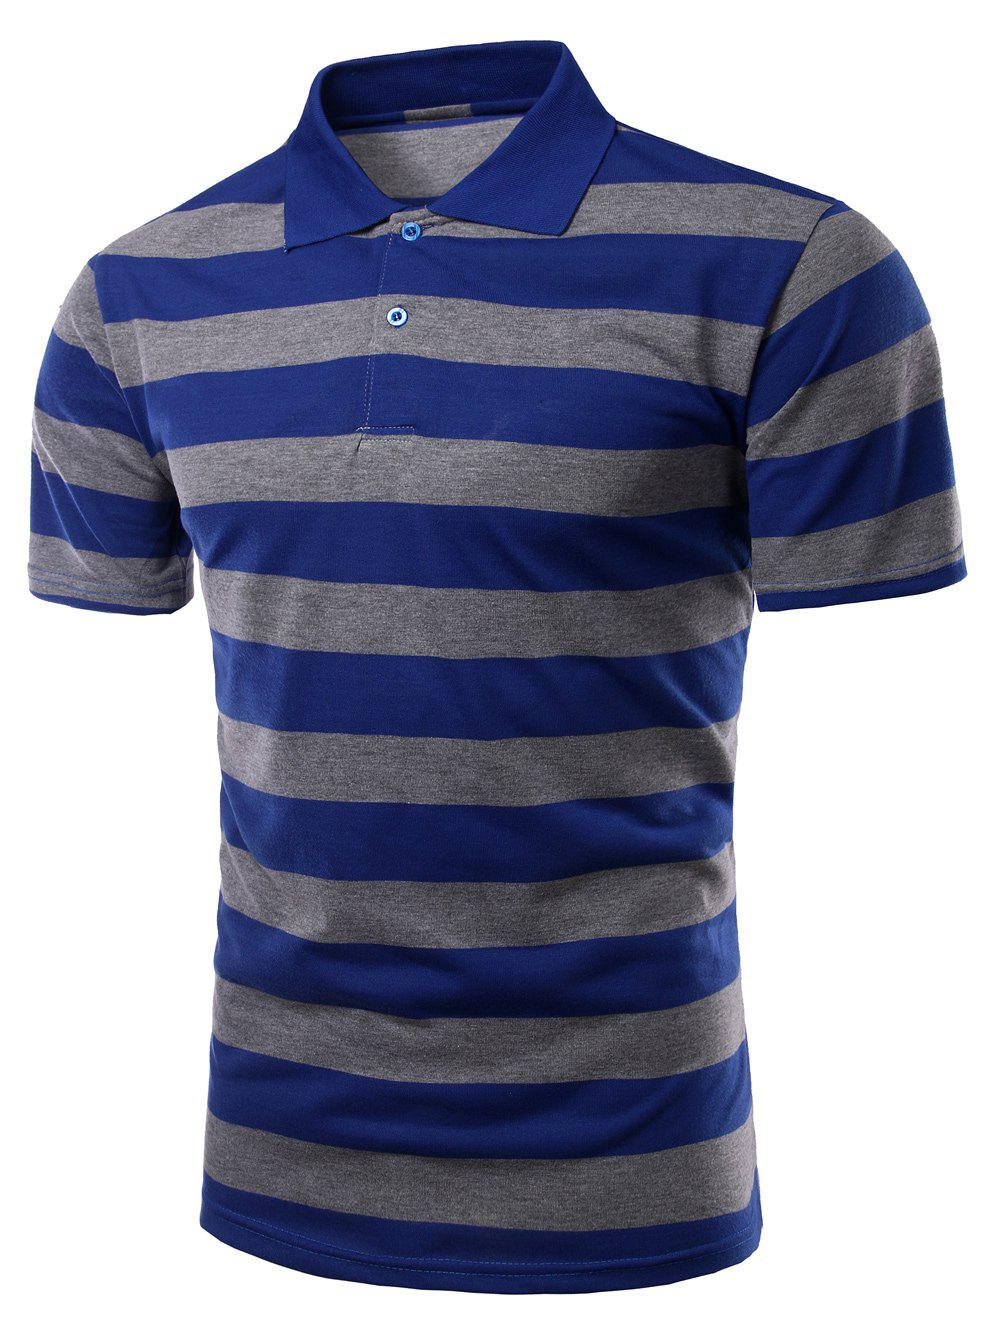 Men's Stripes Turn-down Collar Short Sleeves Polo T-Shirt - BLUE 2XL